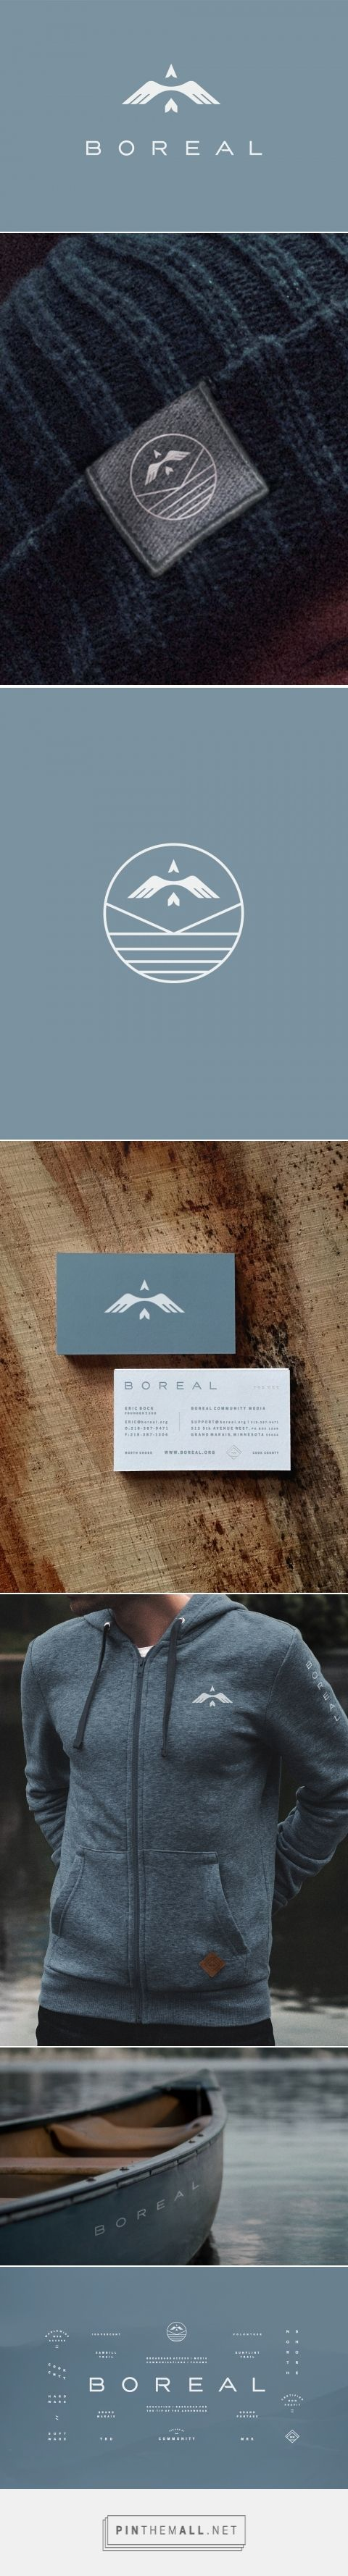 Studio MPLS Creates Identity for Grand Marais Non-Profit, Boreal - The Minneapolis Egotist - created on 2016-10-12 16:26:22